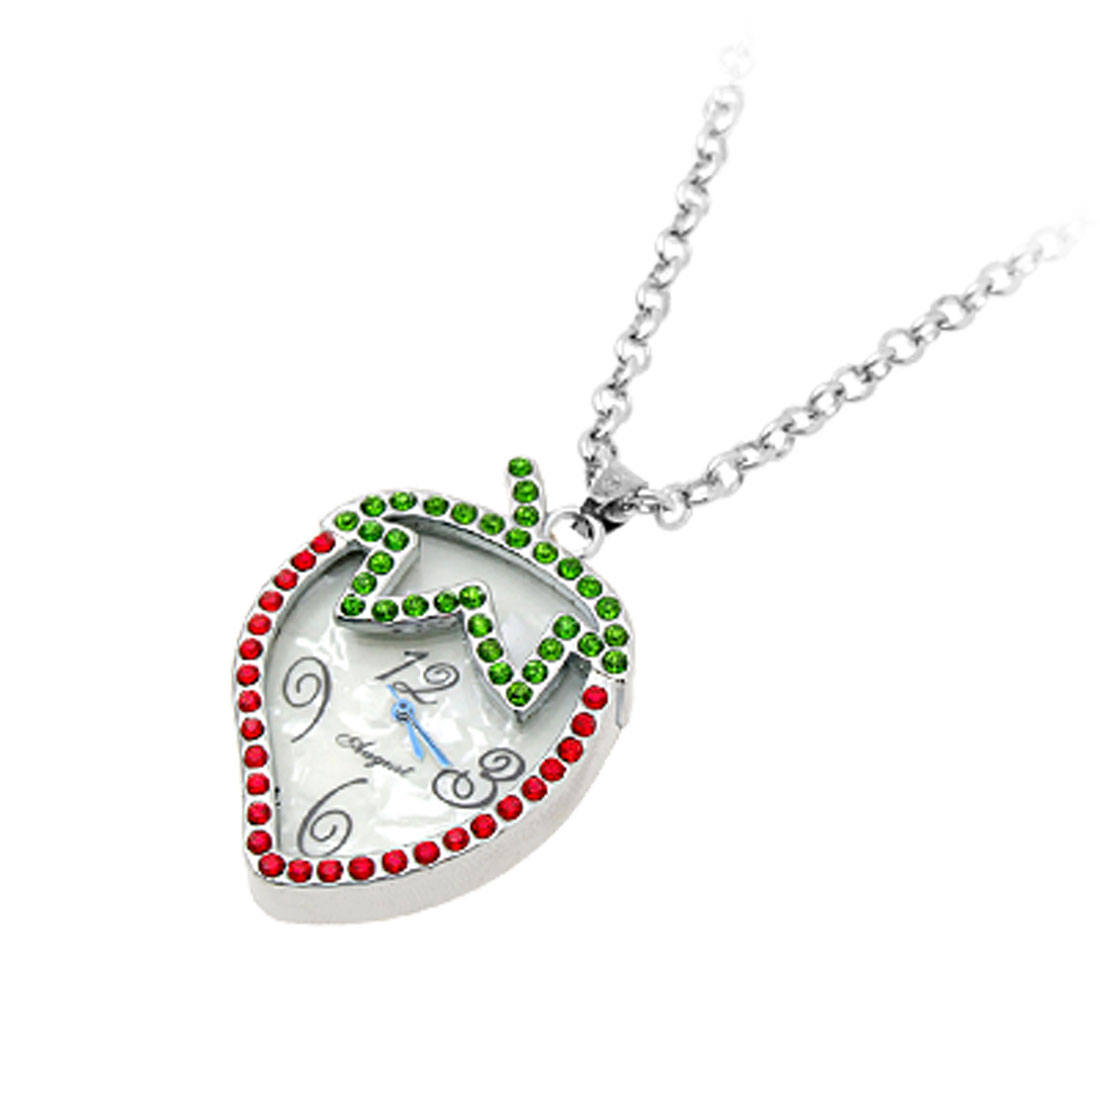 Novel Jewelry Necklace Strawberry Crystal Pendant Quartz Watches Red